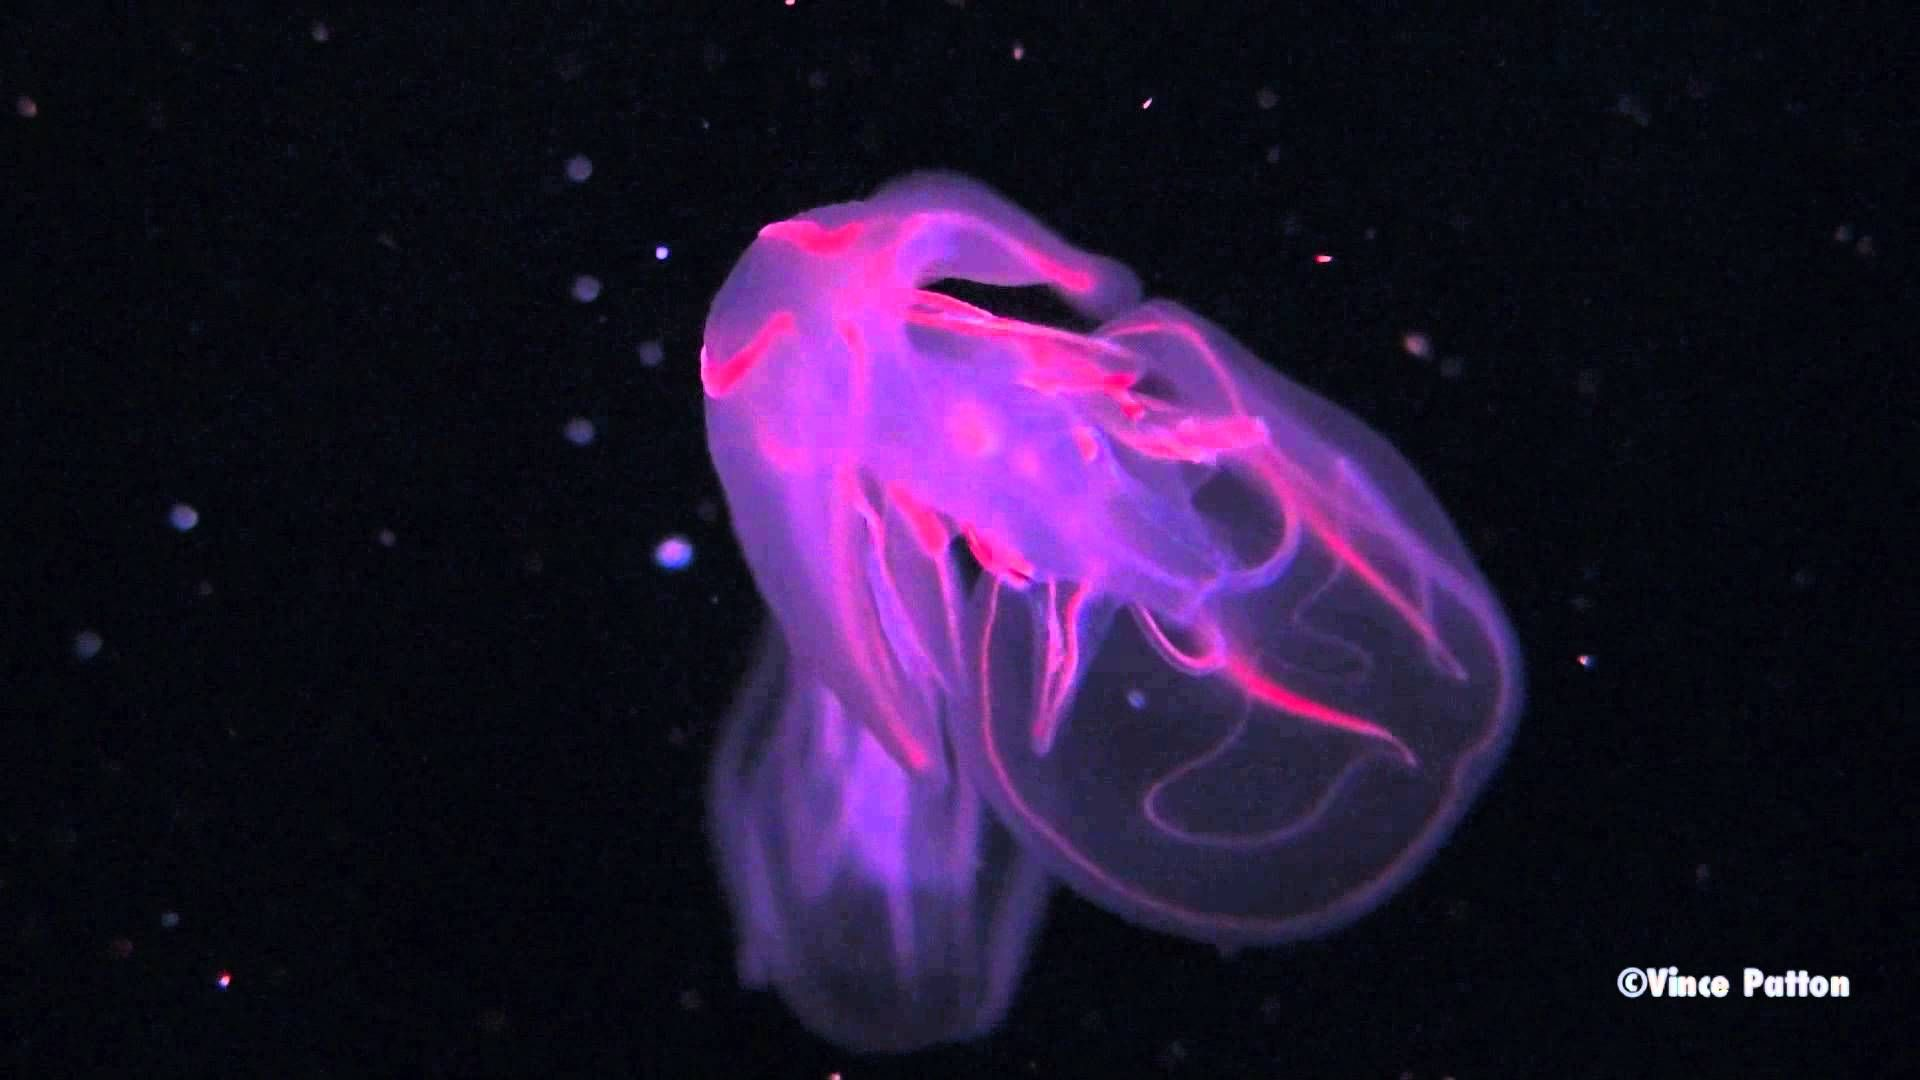 An Undescribed Species Of Hydromedusa Jellyfish In The Genus Tetrochis That Possesses Some Bioluminescent Capabilities